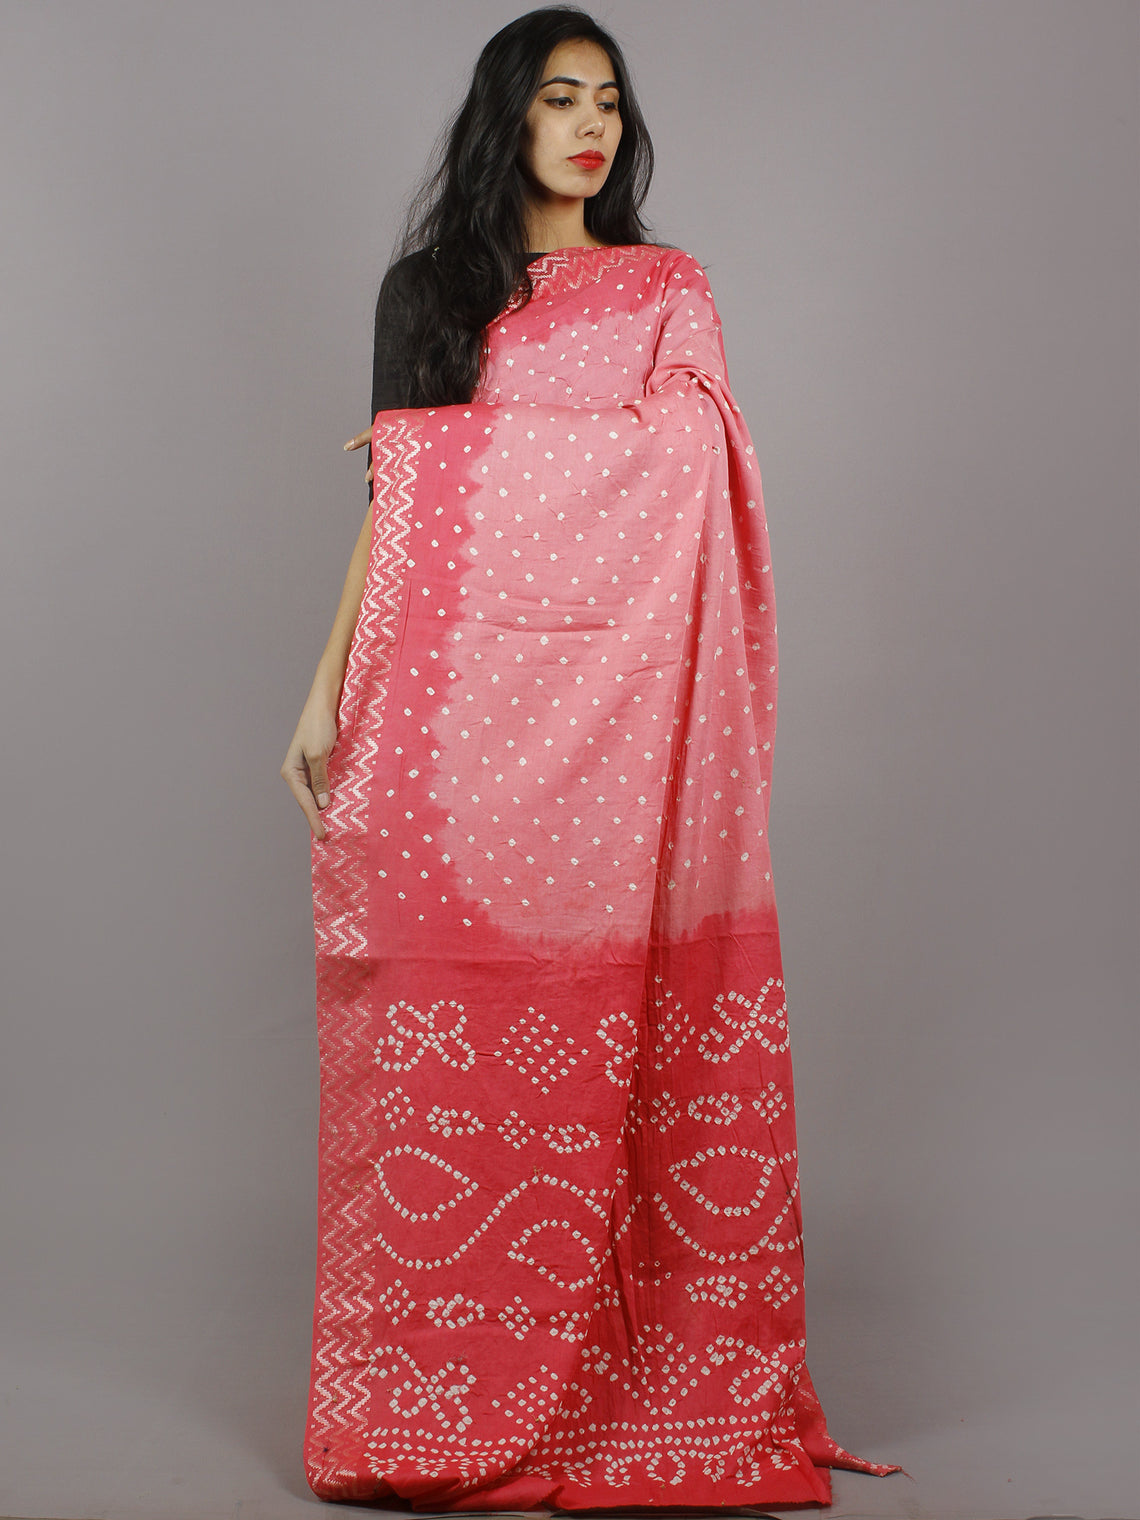 Pastel Pink Ivory Hand Tie & Dye Bandhej Glace Cotton Saree With Resham Border - S031701312